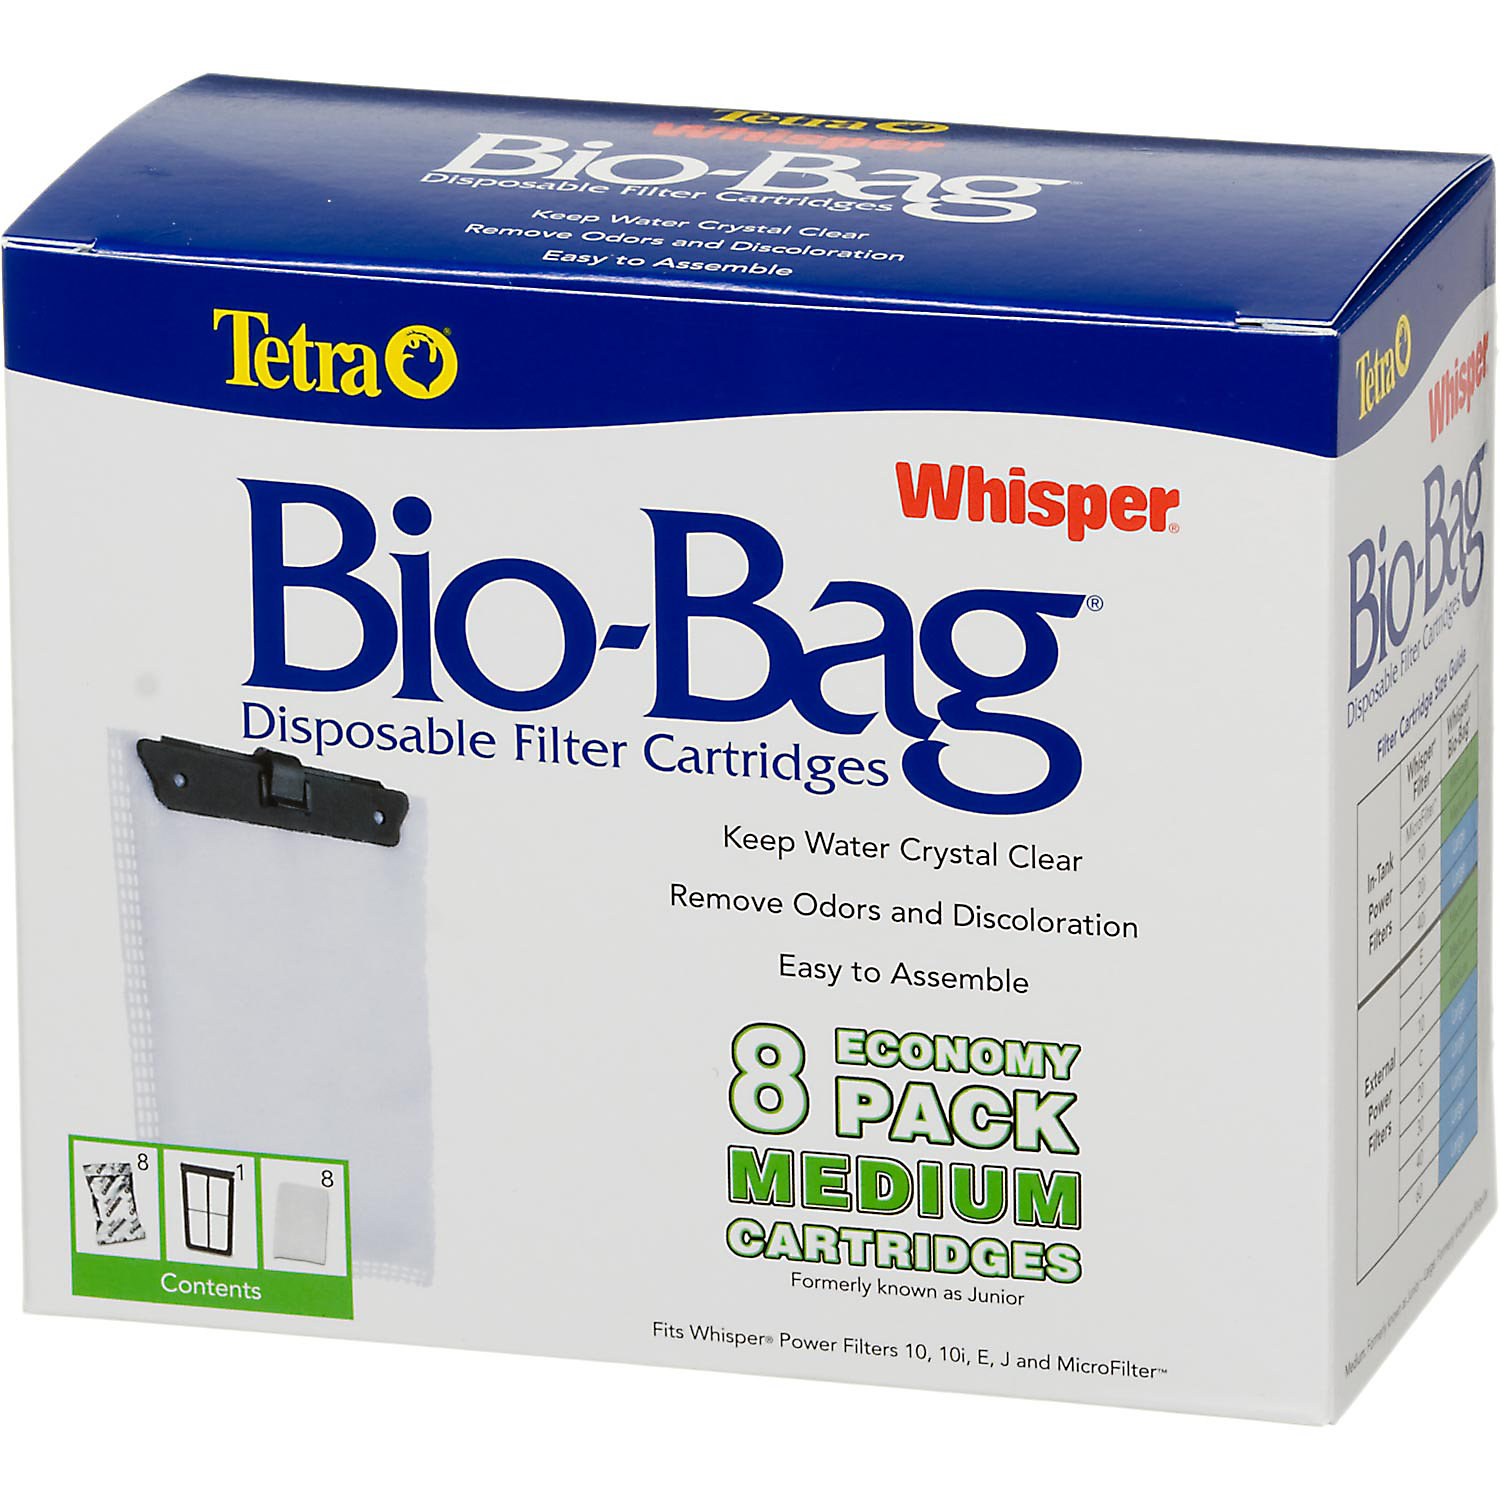 Tetra Whisper Bio Bag Disposable Filter Cartridges Medium Pack Of 8 Cartridges